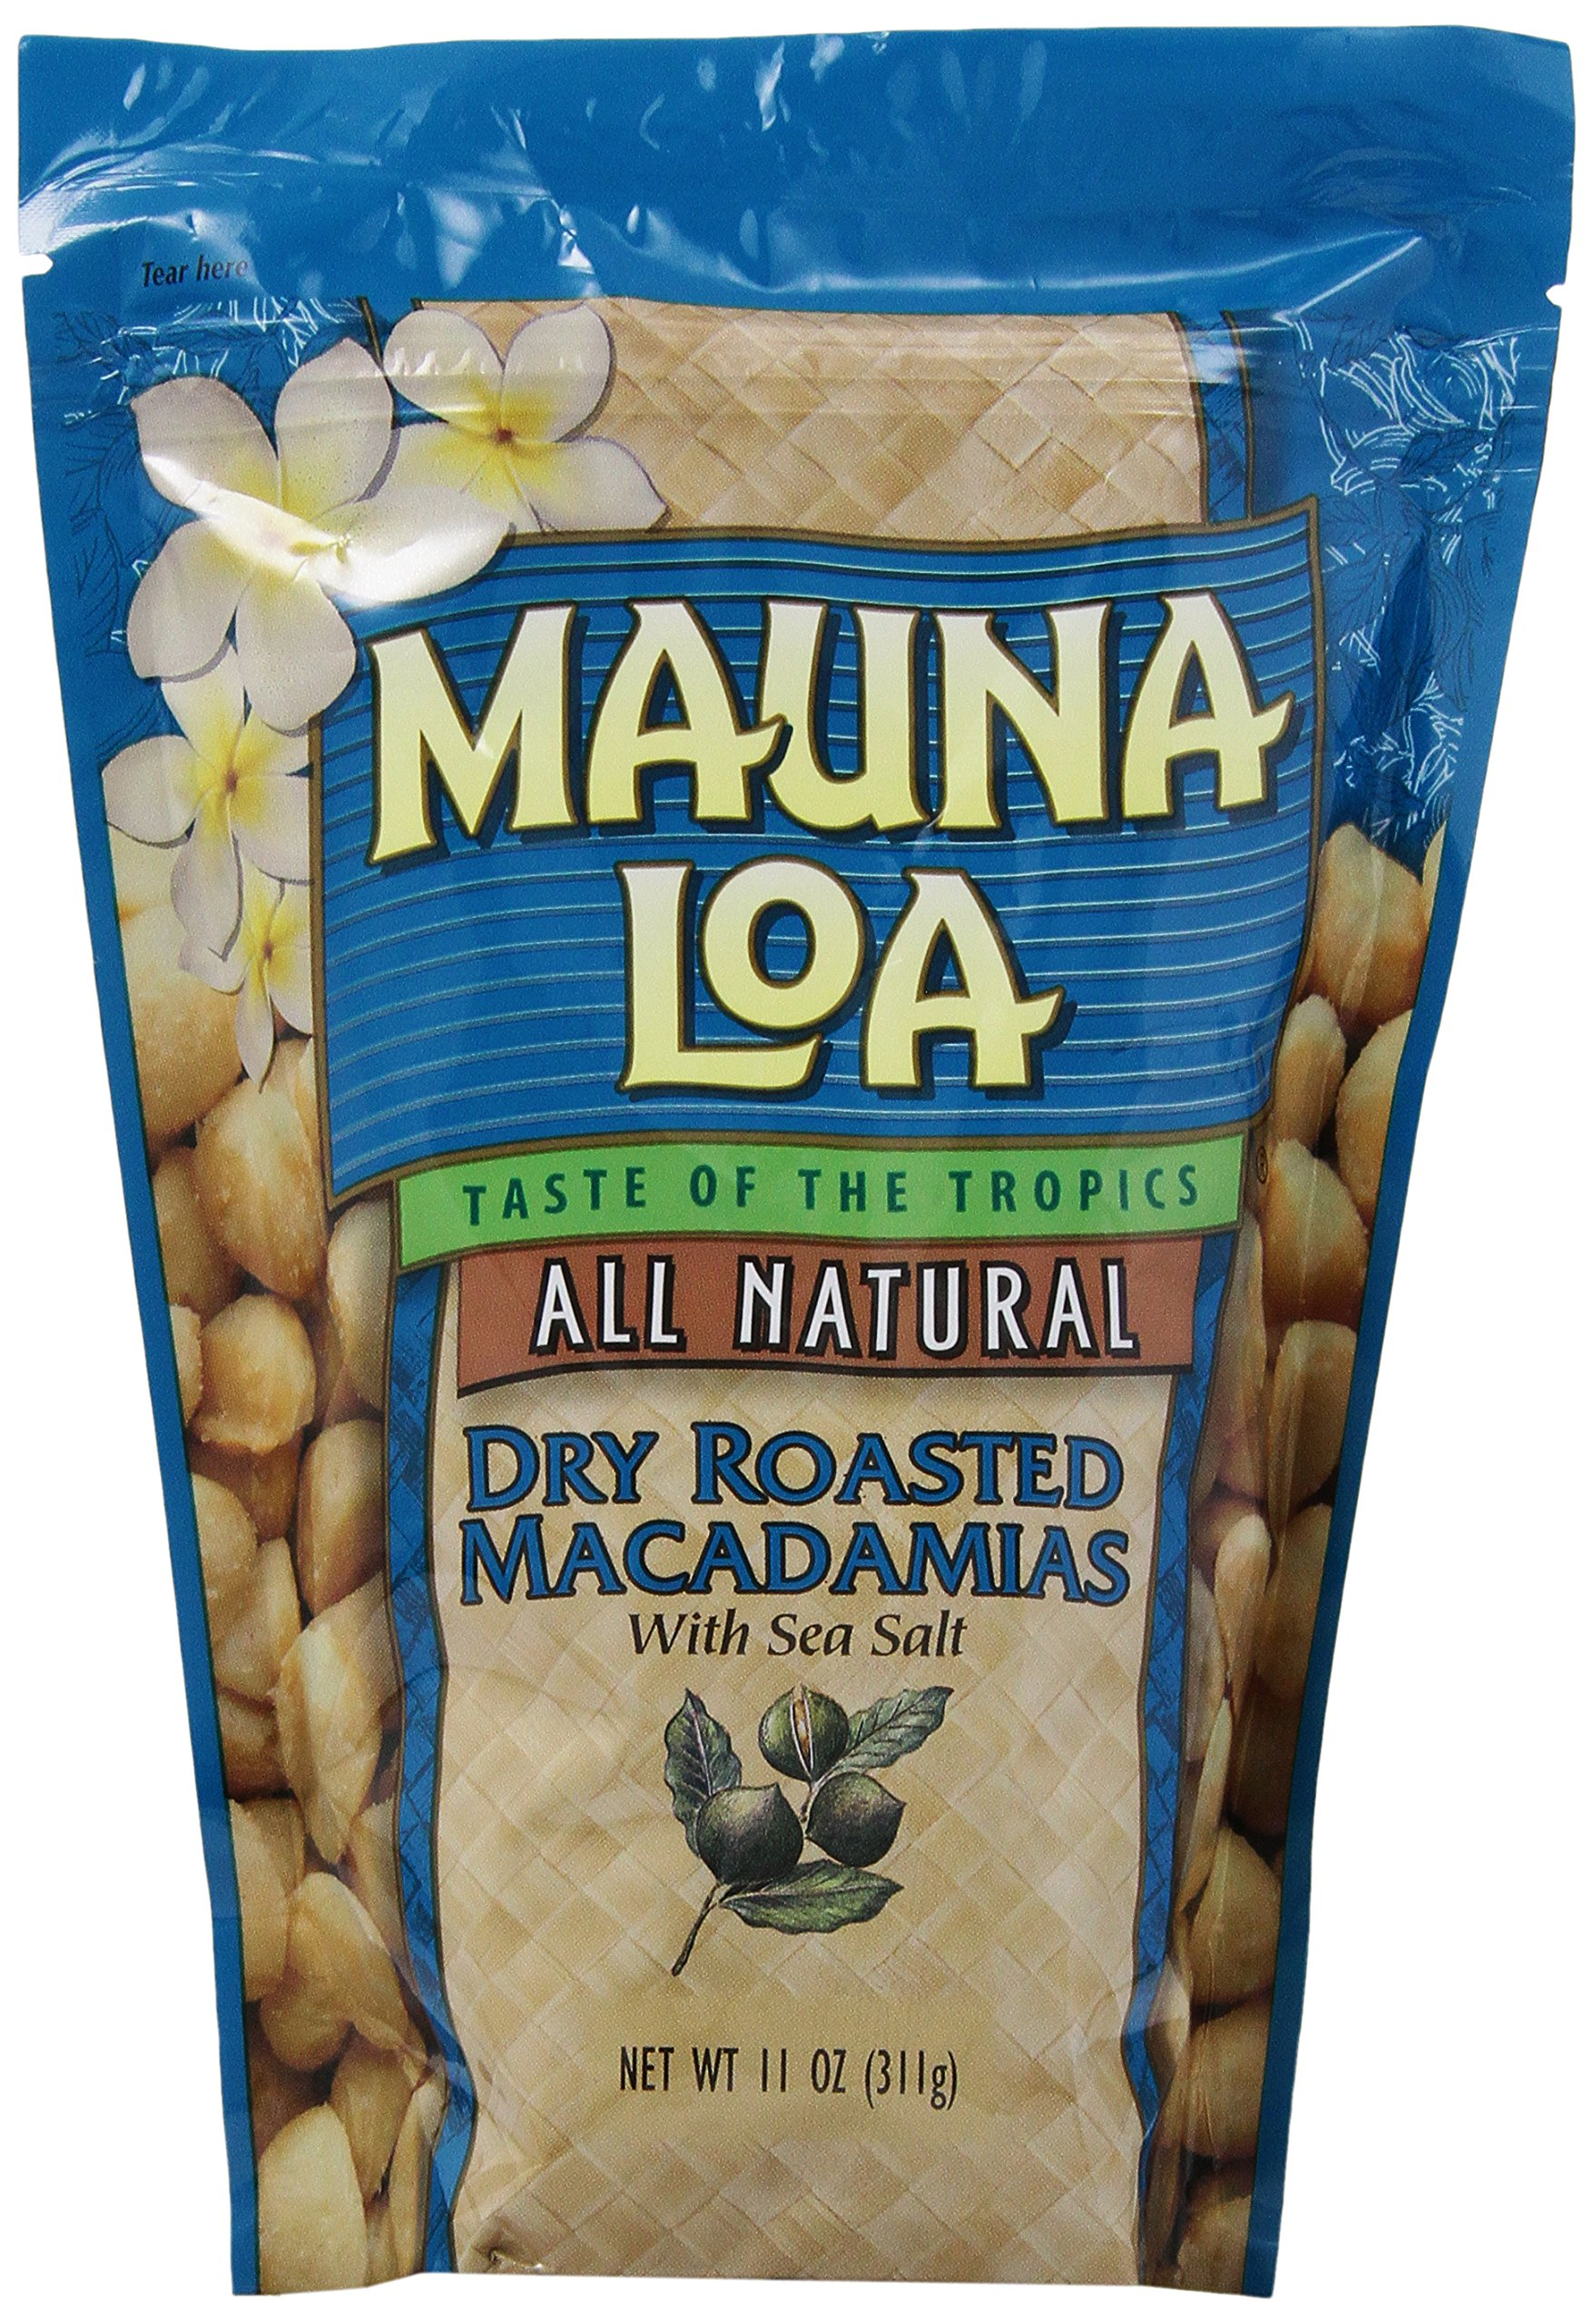 Macadamia Nut: useful properties, taste, application